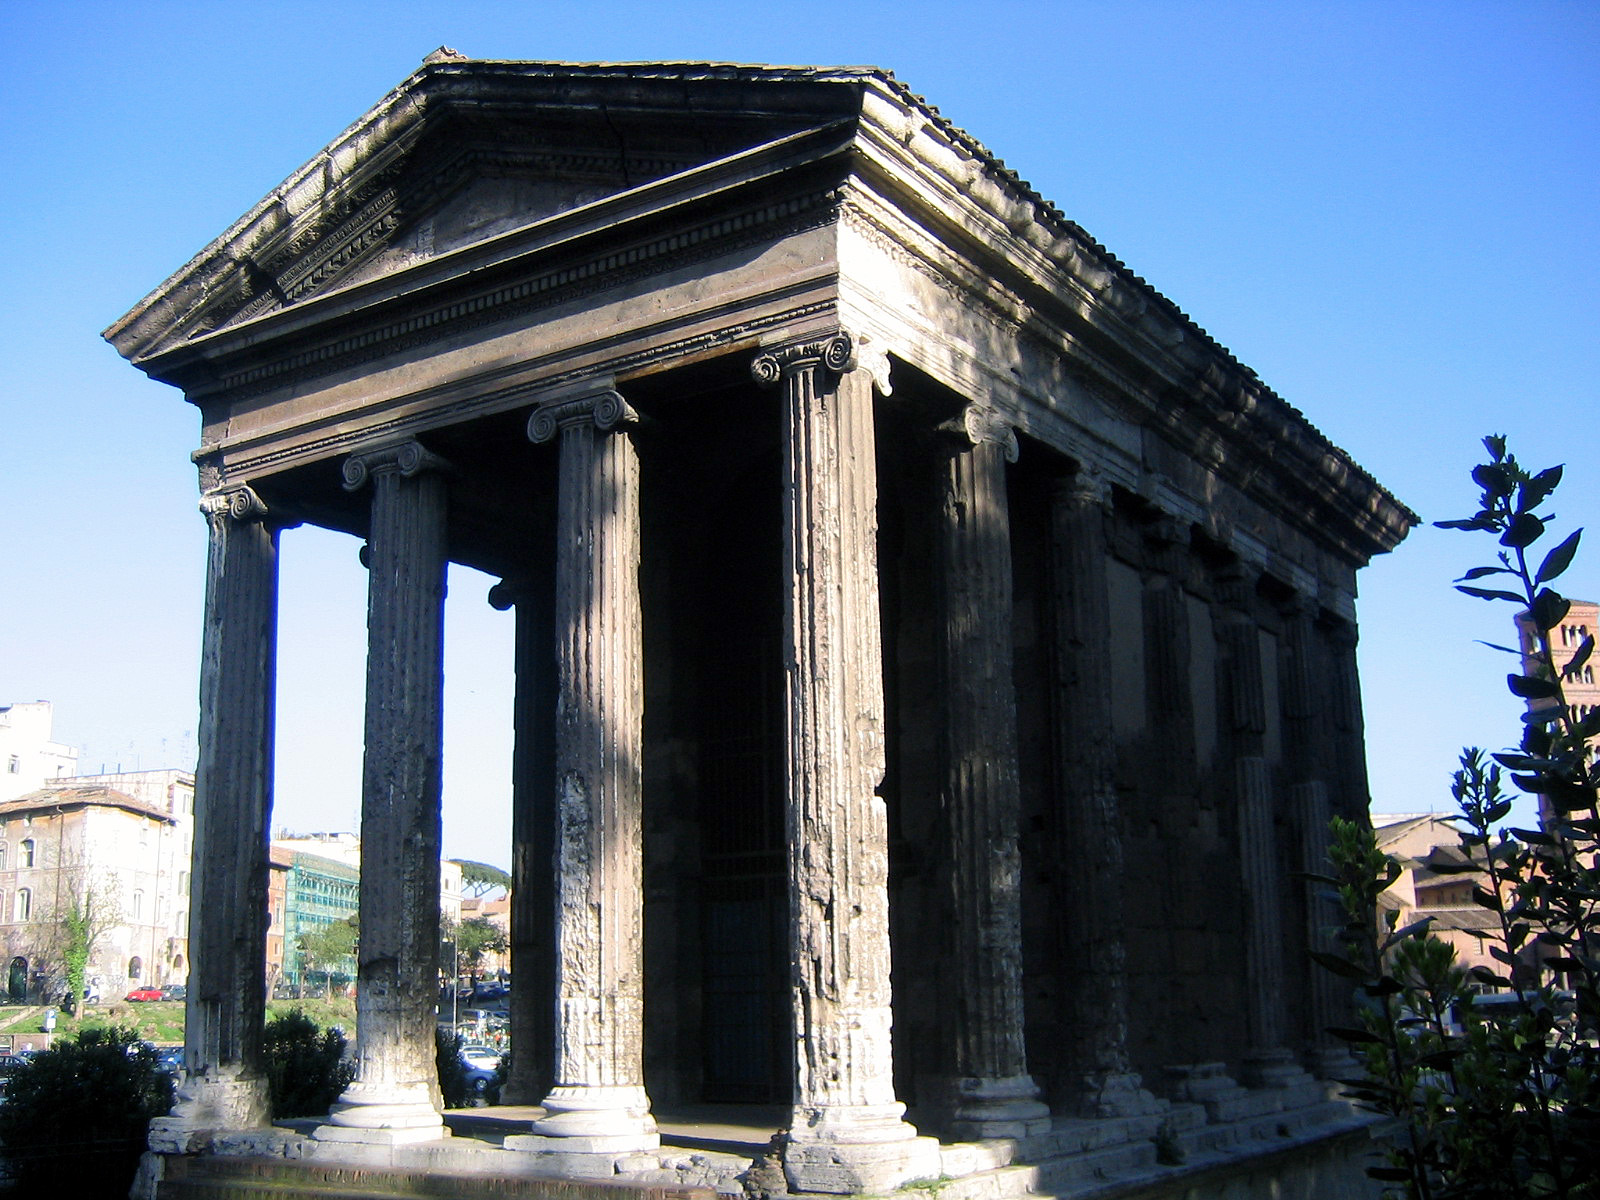 http://s5.picofile.com/file/8148165168/Temple_of_portunus_front.jpg